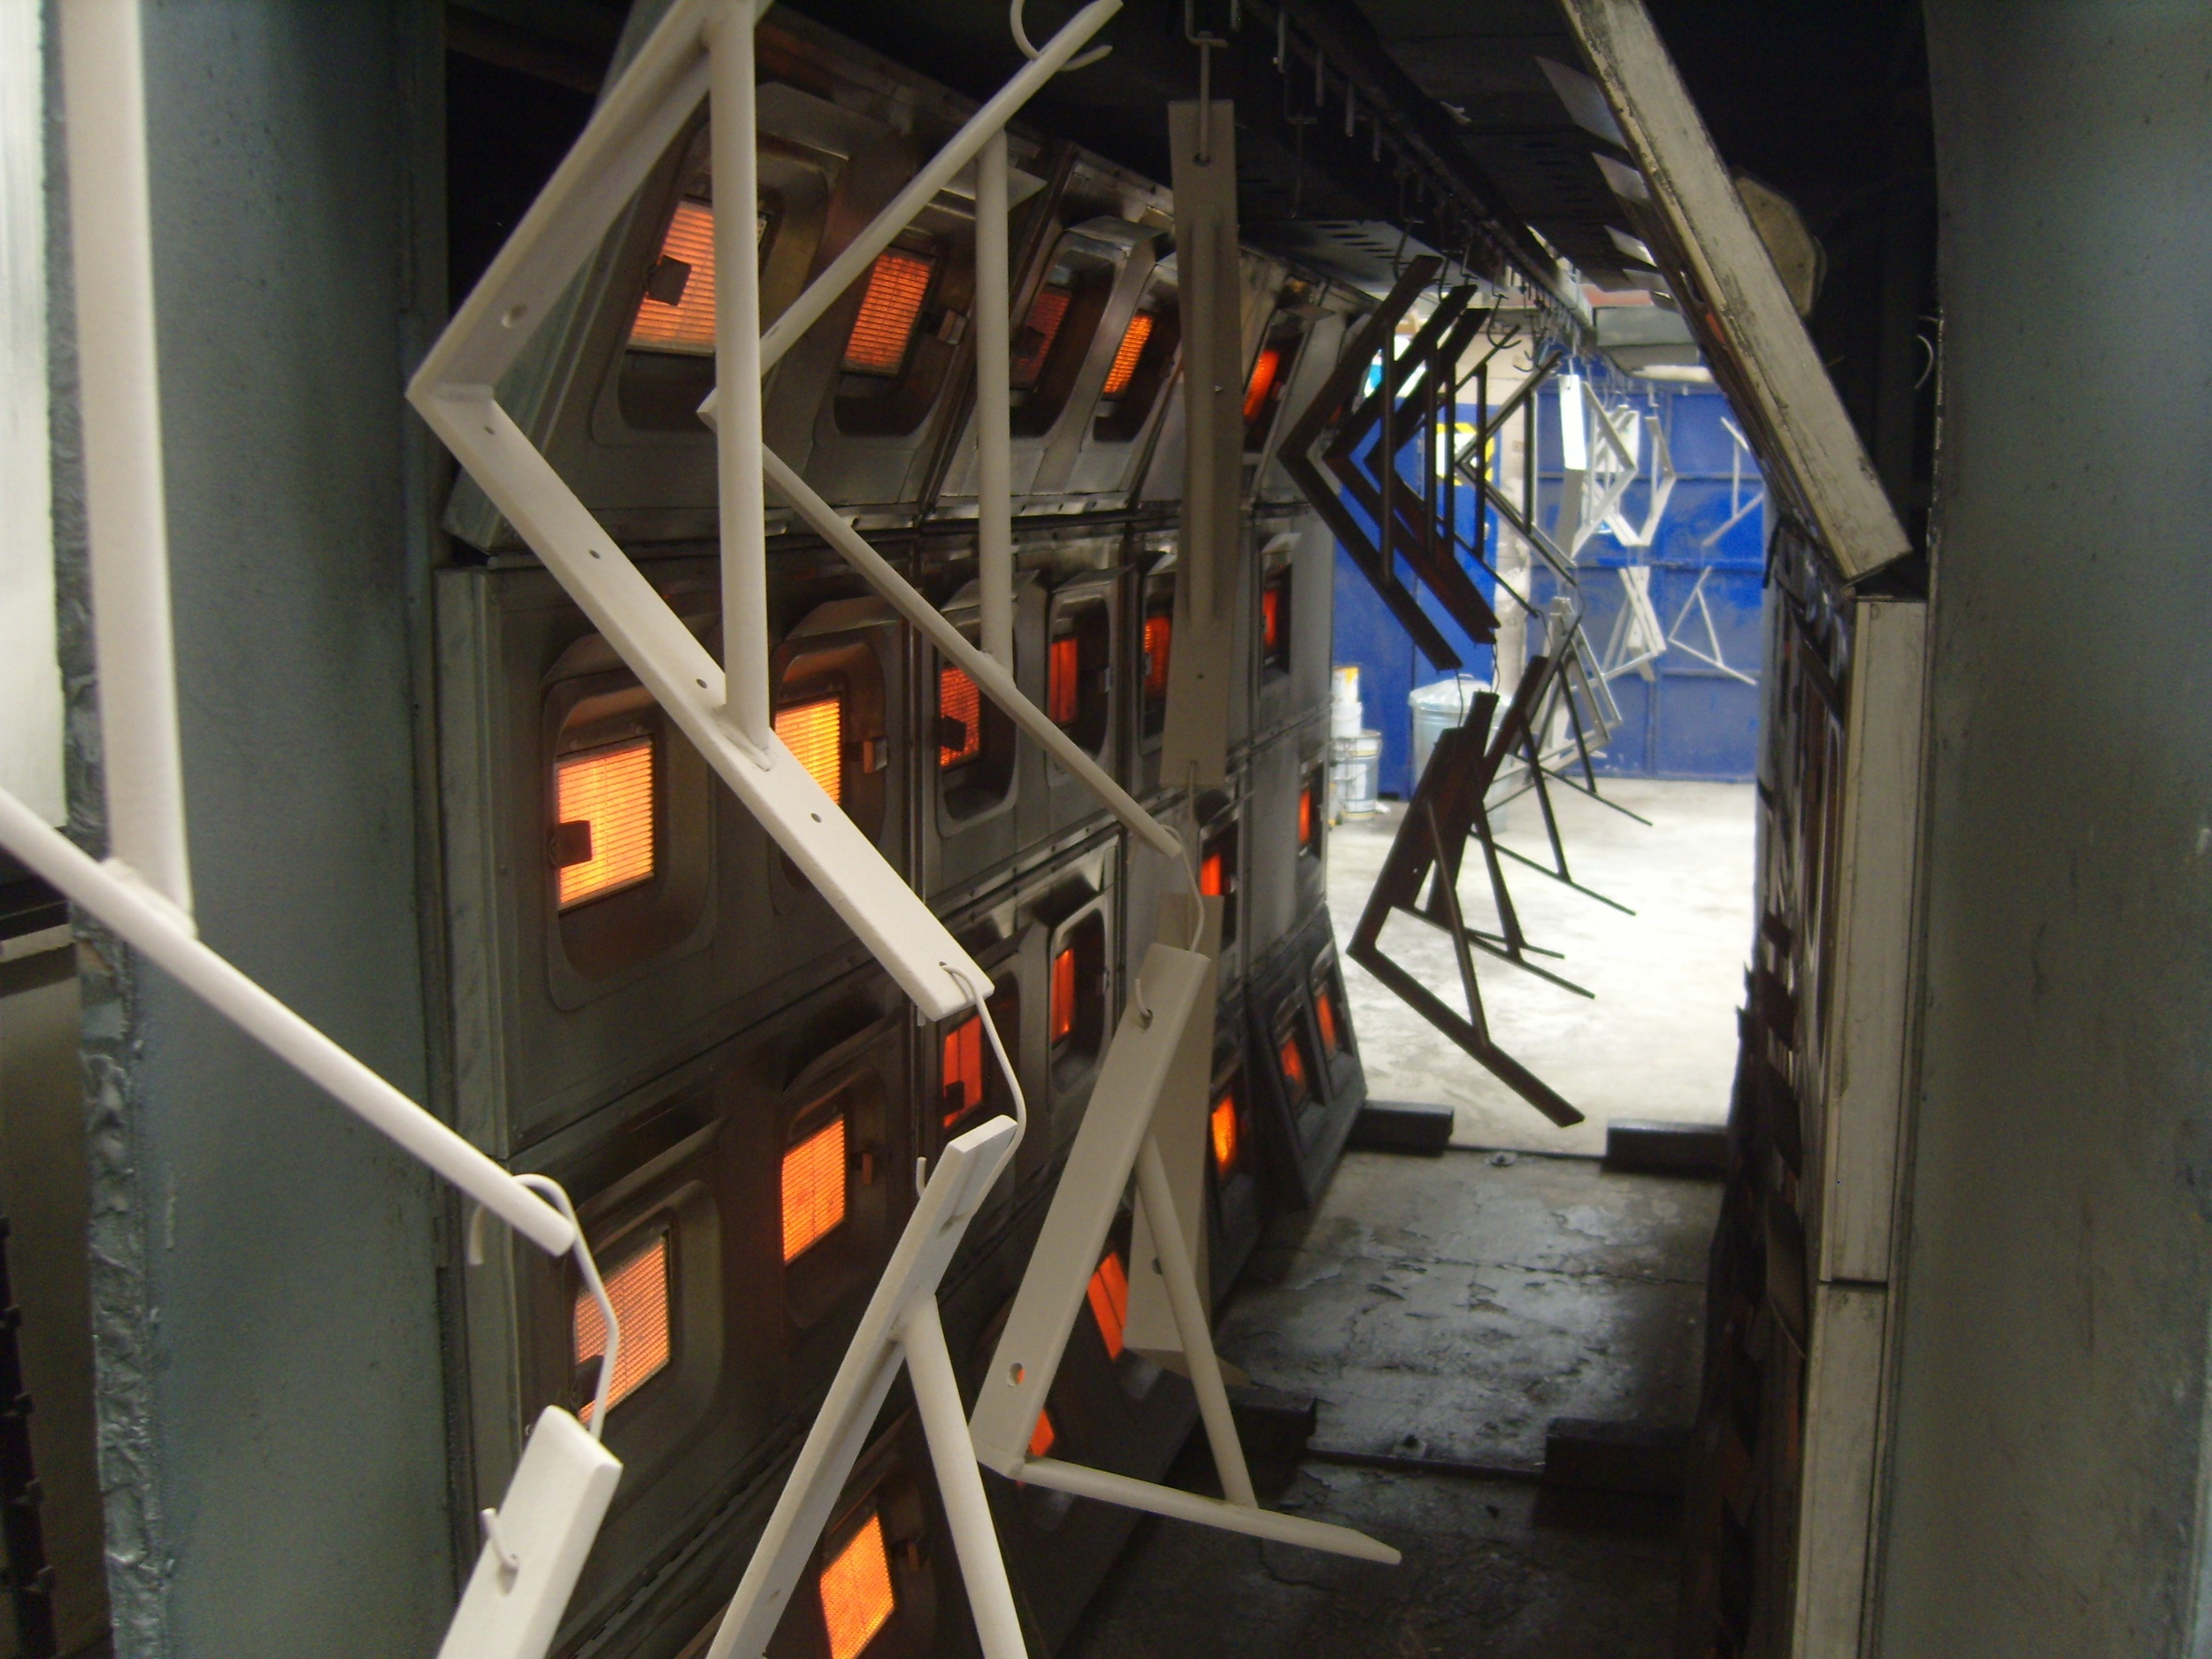 Powder coated components in curing oven.